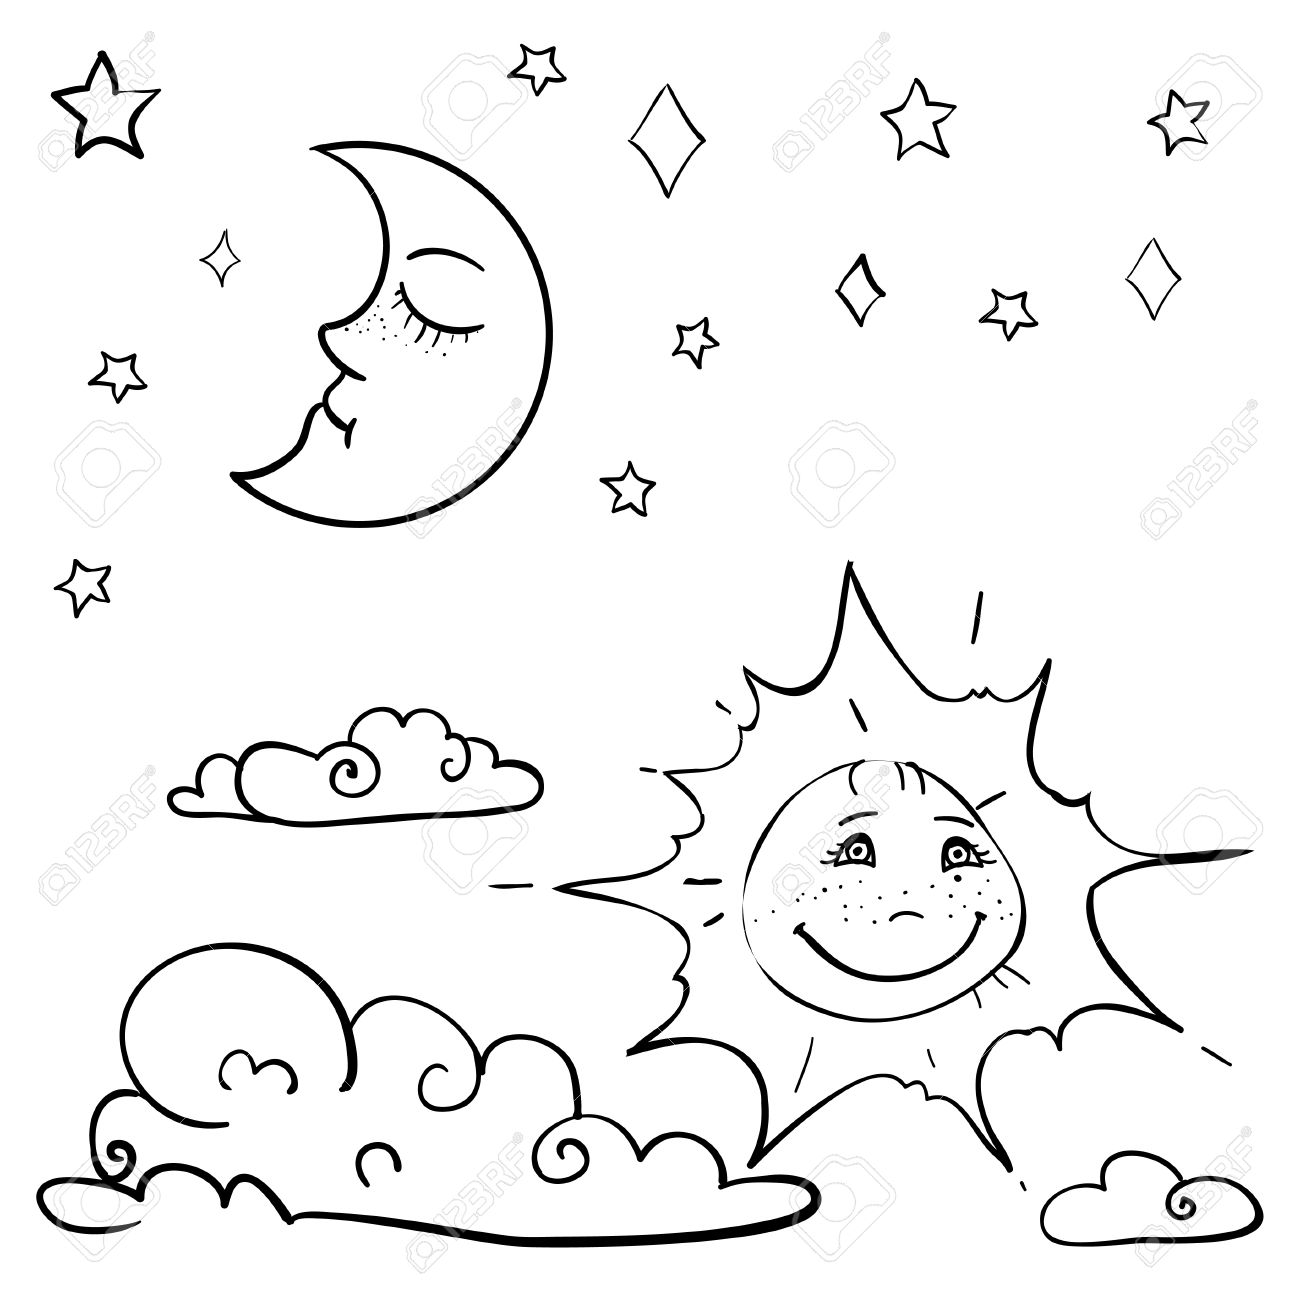 1300x1300 Hand Drawn Vector Children's Coloring Book With Moon, Sun, Cloud